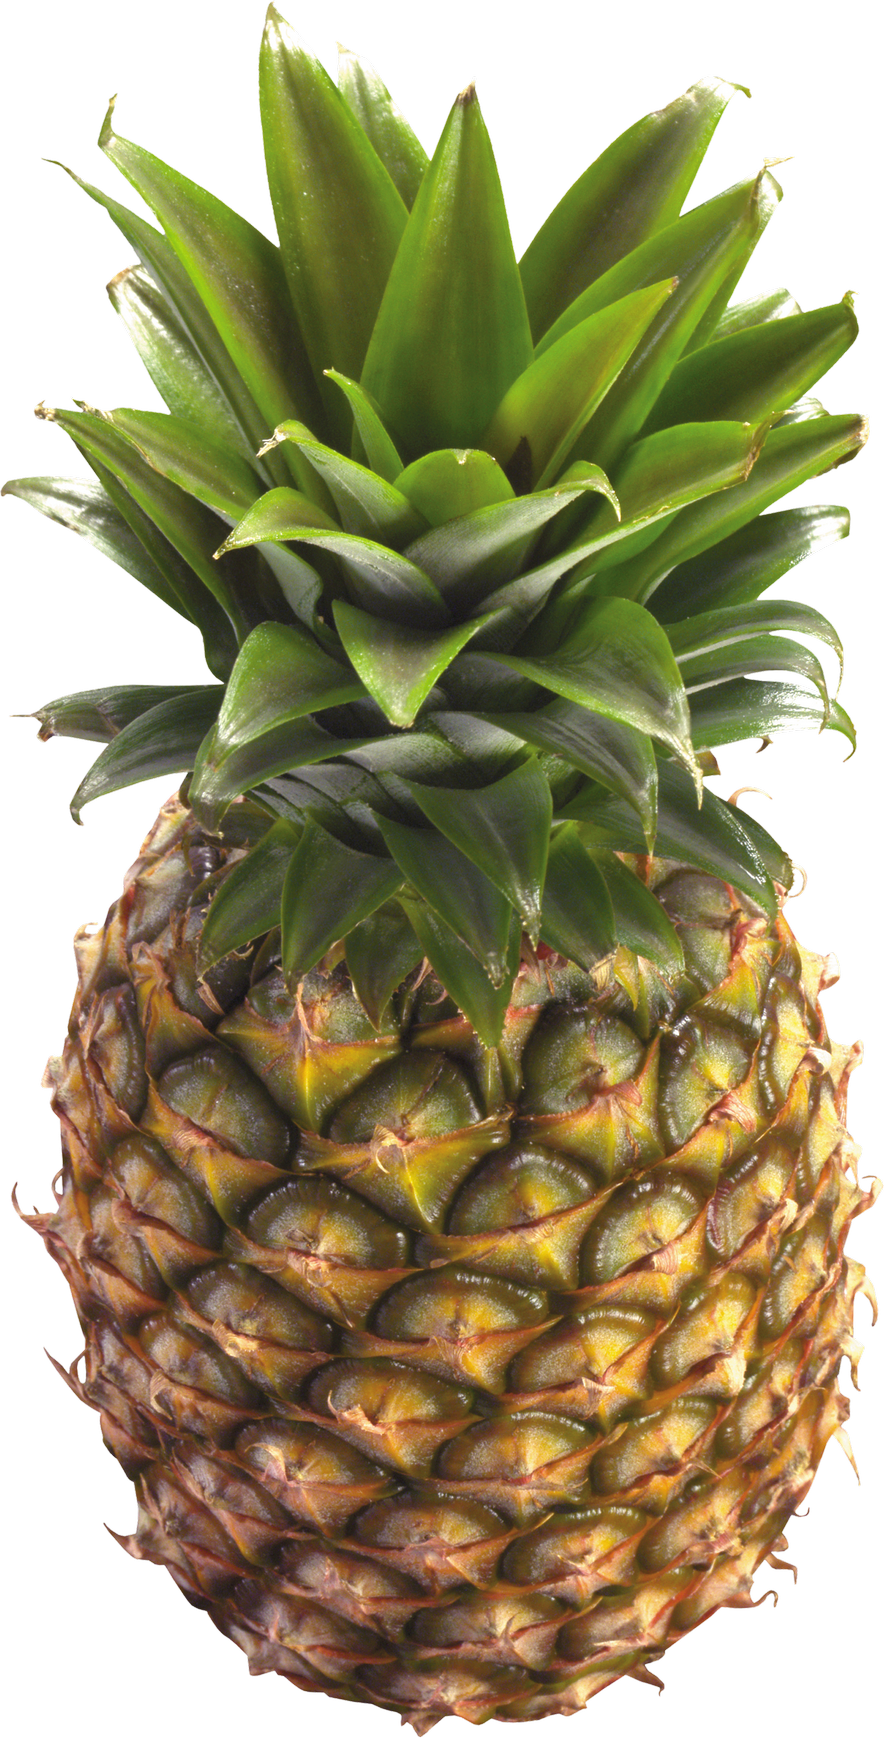 Pineapple PNG Image - PurePNG | Free transparent CC0 PNG ...